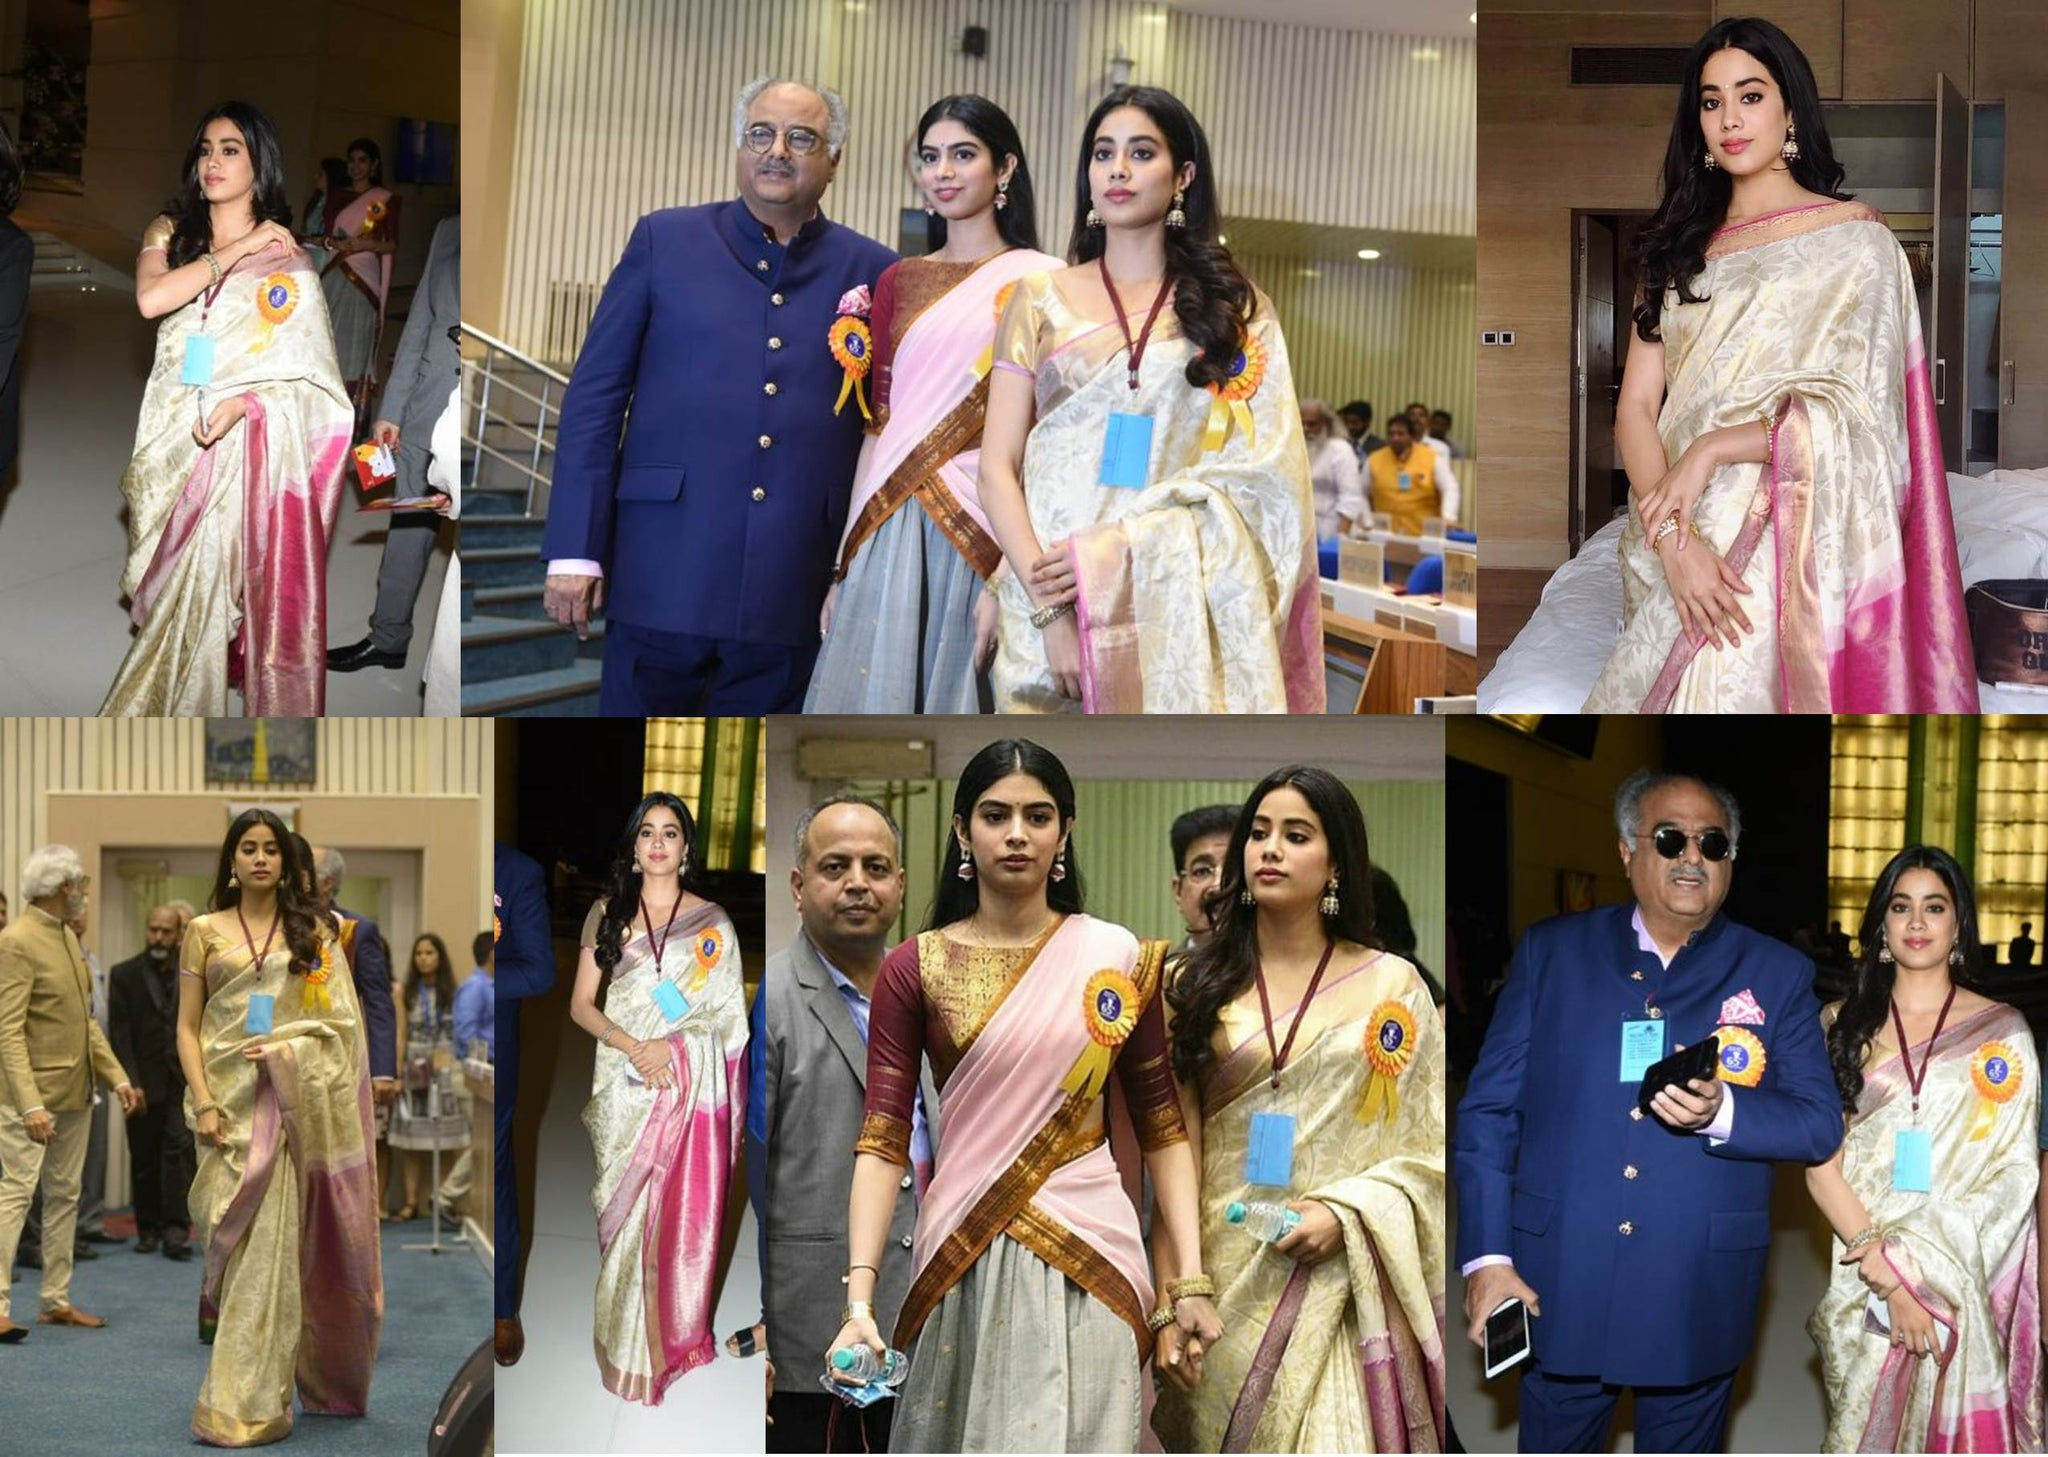 Janhvi Kapoor Wore Her Mommy Sridevi's Sari to Receive The Indian National Award